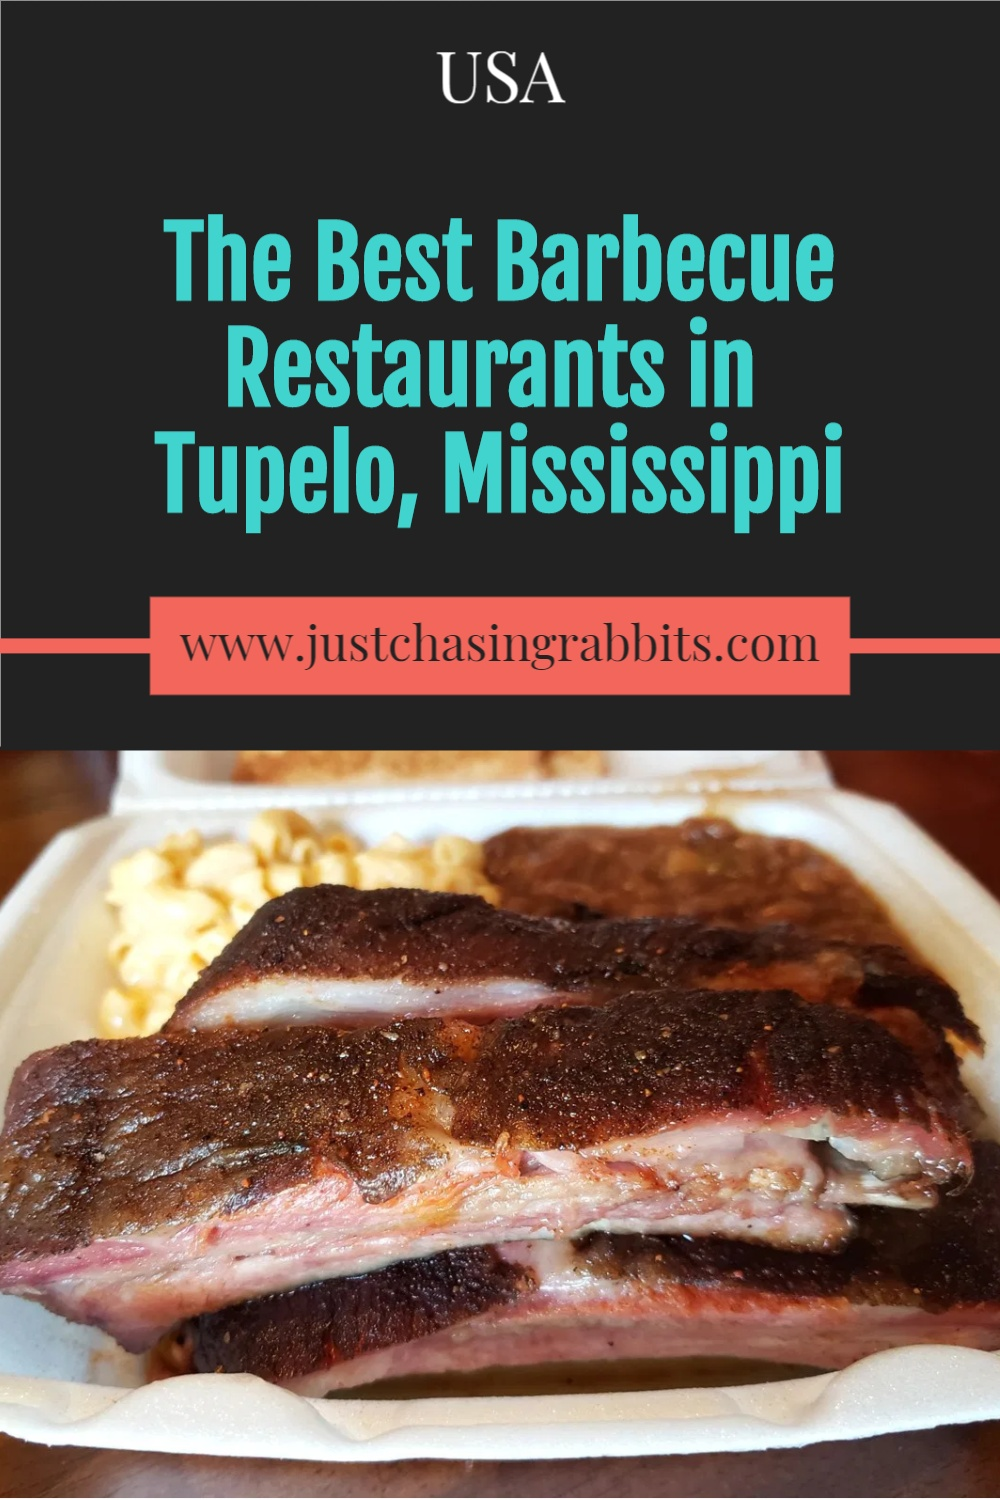 Looking for barbecue in Tupelo, Mississippi? We have a list of our favorite BBQ joints to get your fix of ribs and pulled pork in the birthplace of the King!   Things to do in Tupelo   Where to eat in Tupelo   Places to eat in Tupelo   Tupelo restaurants   #mytupelo #tupelofoodie #visitms